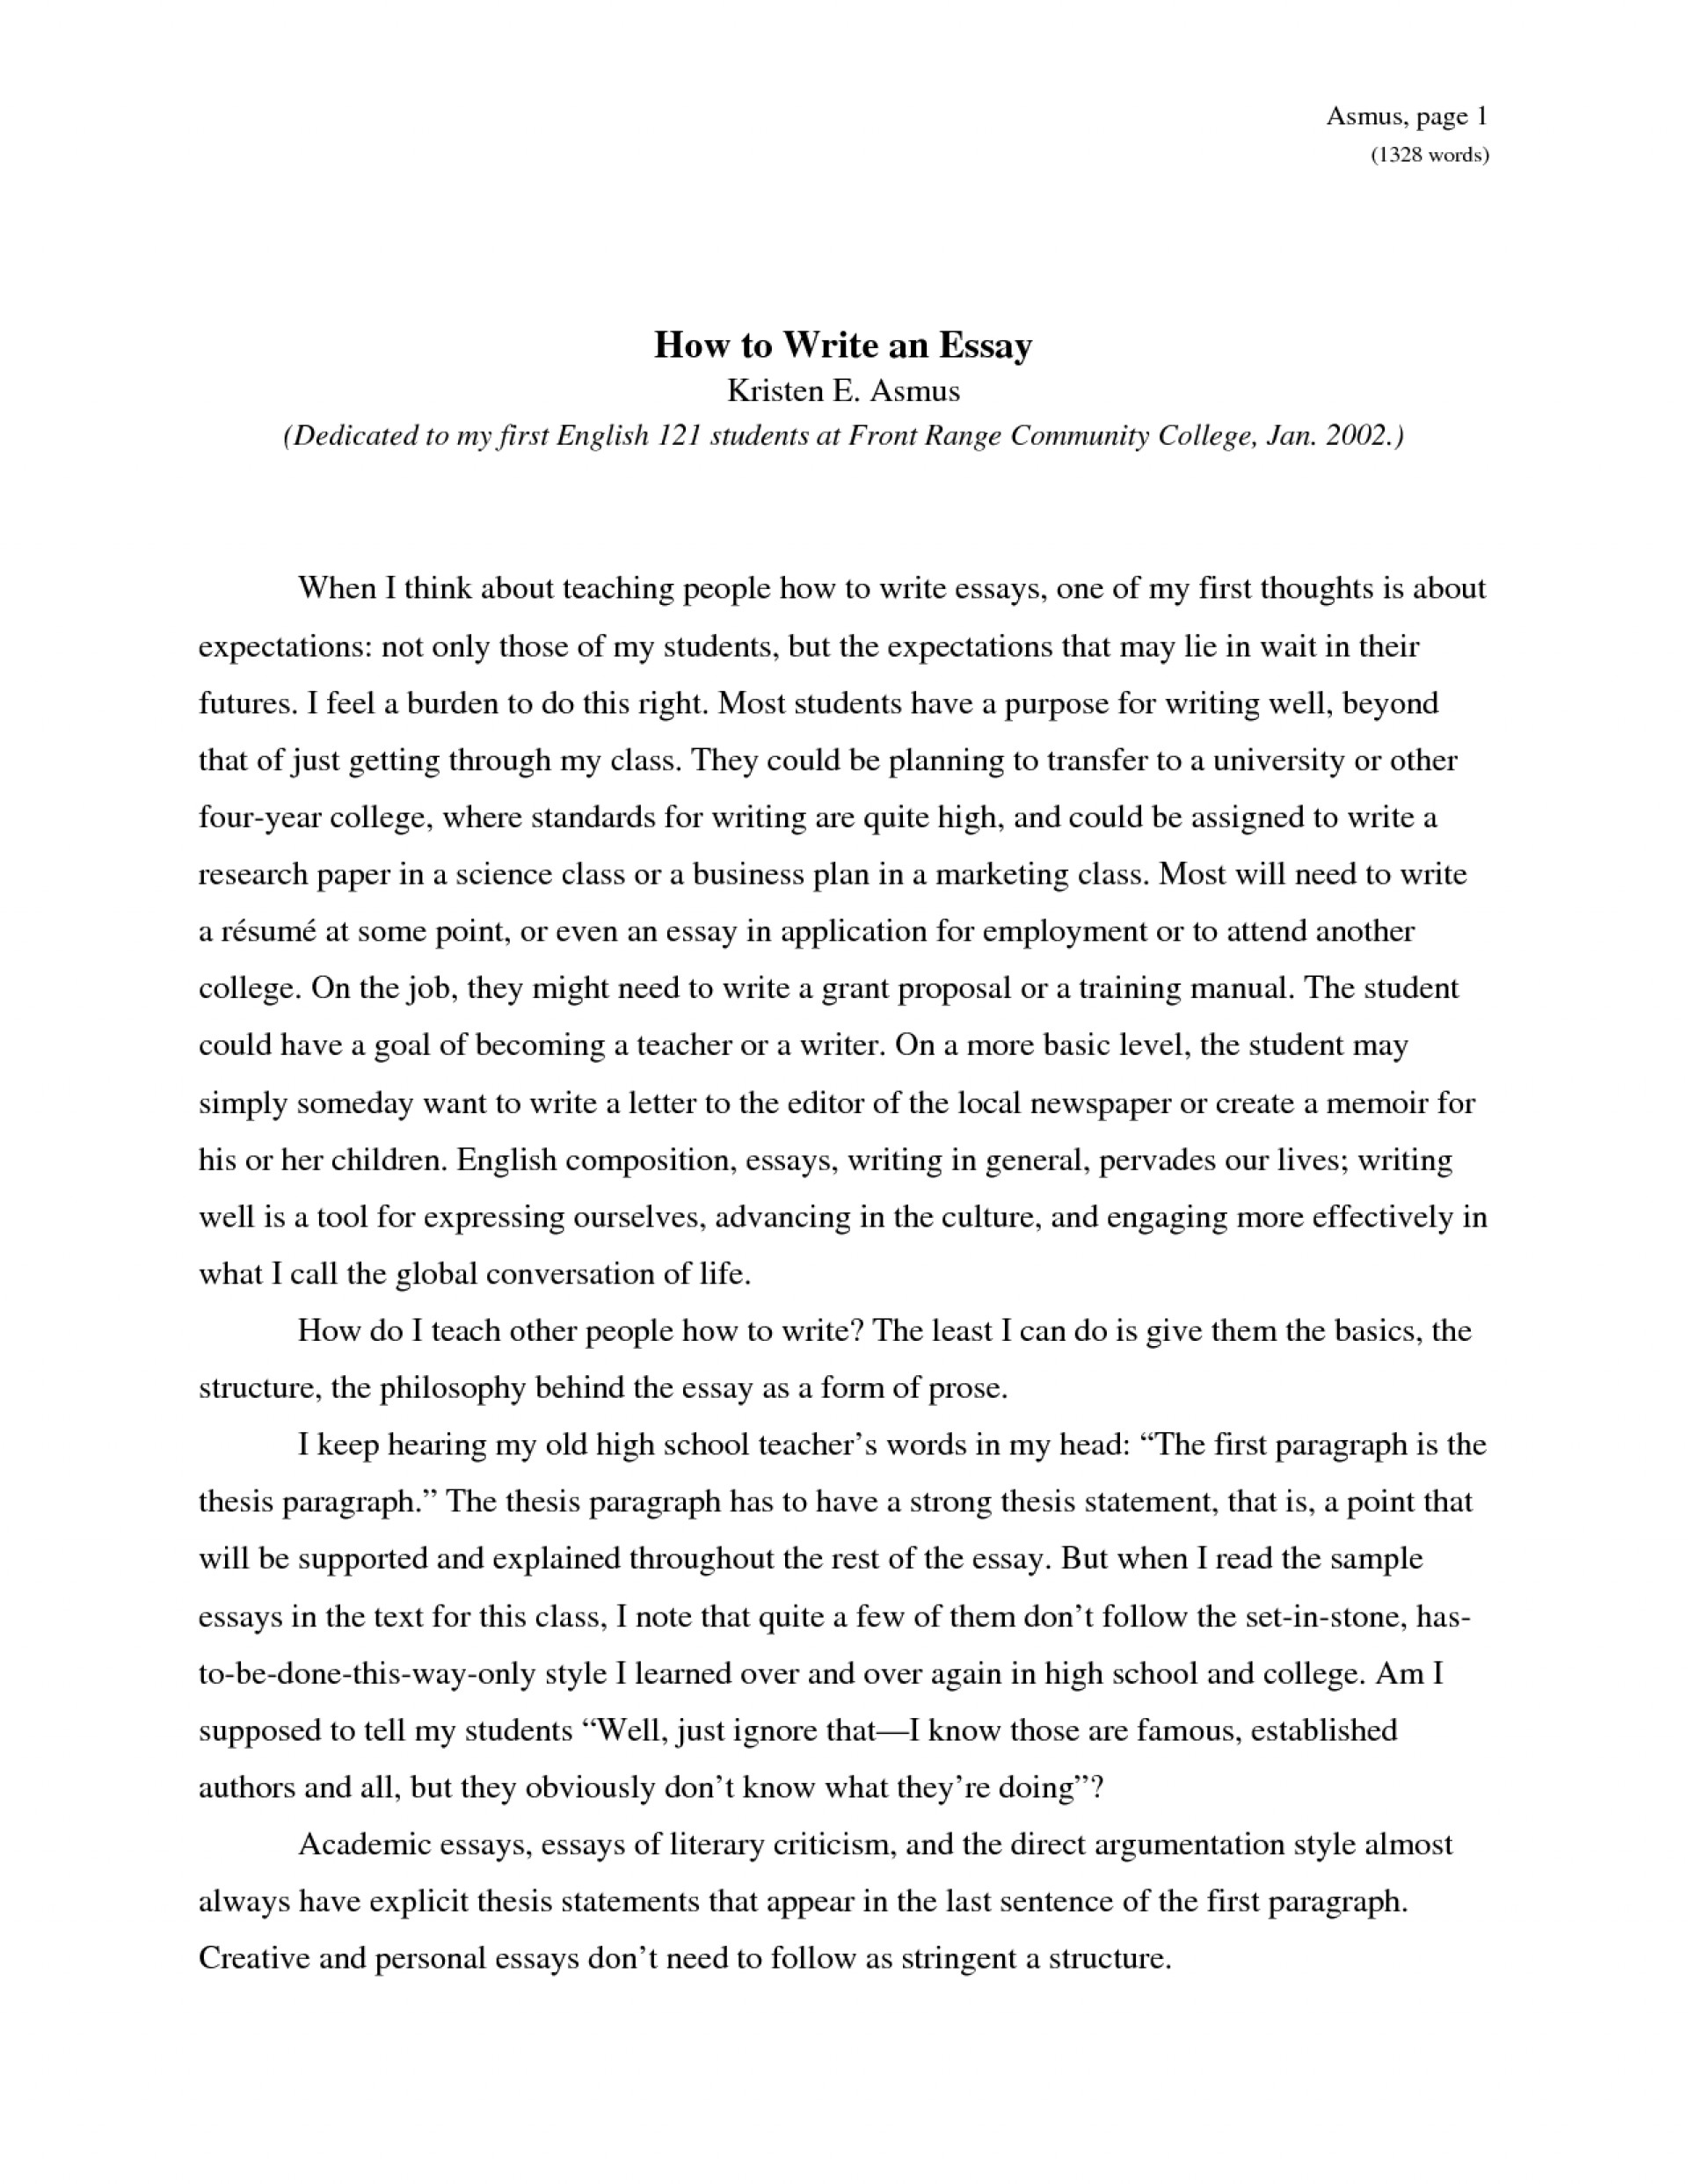 013 Essay Example How To Write An Obfuscata Sample Of L Shocking About Myself For A Scholarship Excellent Conclusion Pdf 1920